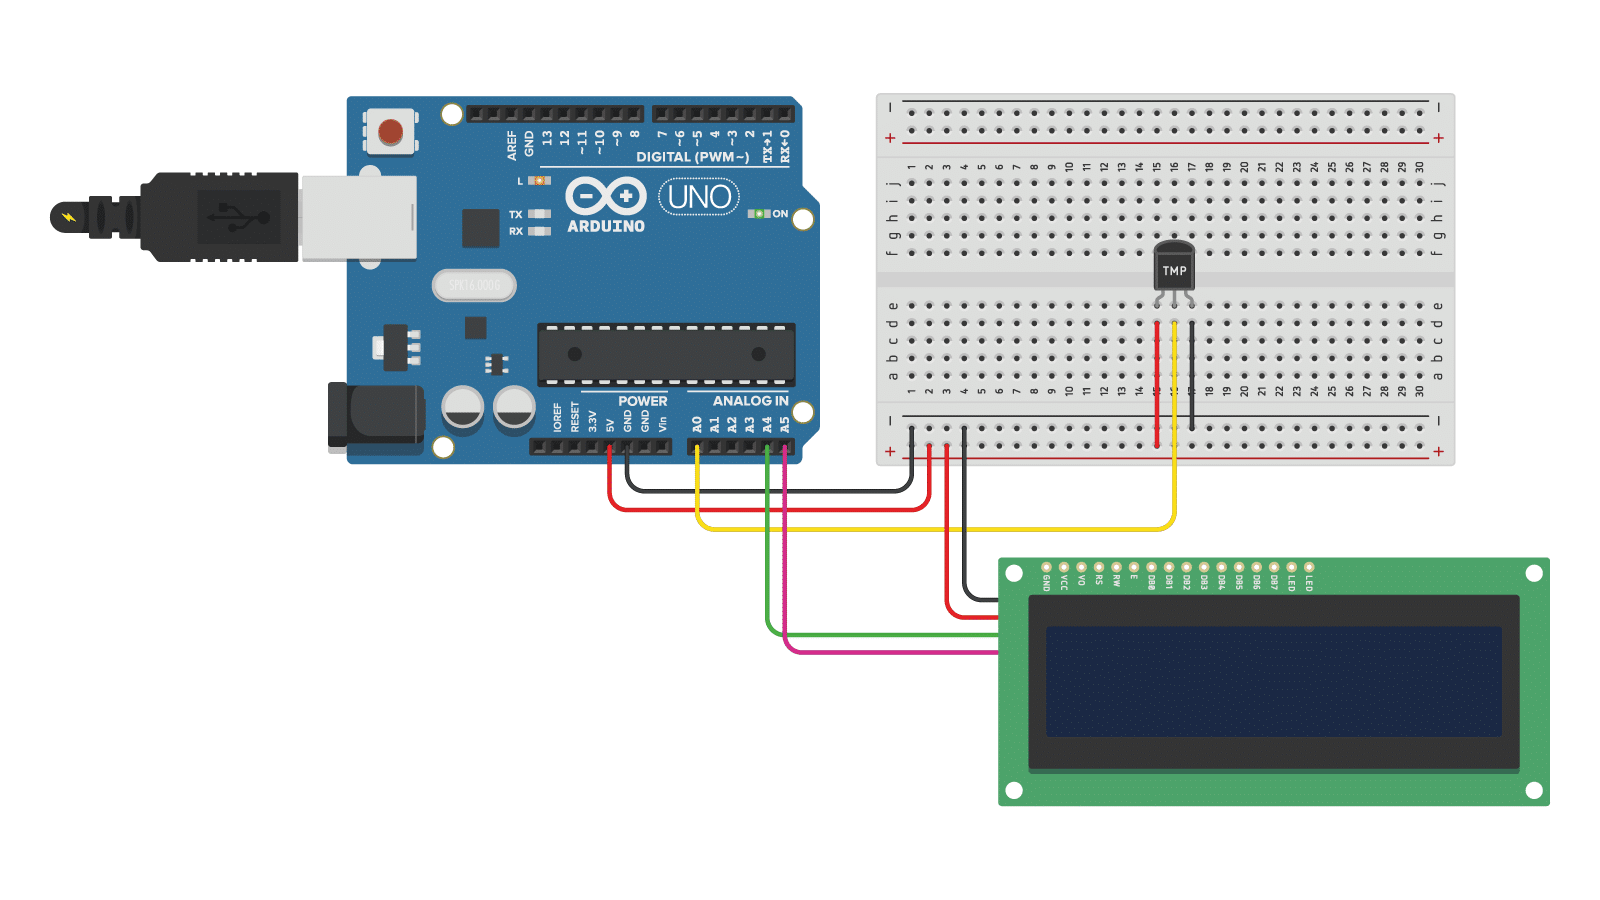 TMP36 analog temperature sensor with 16x2 character I2C LCD and Arduino wiring diagram.